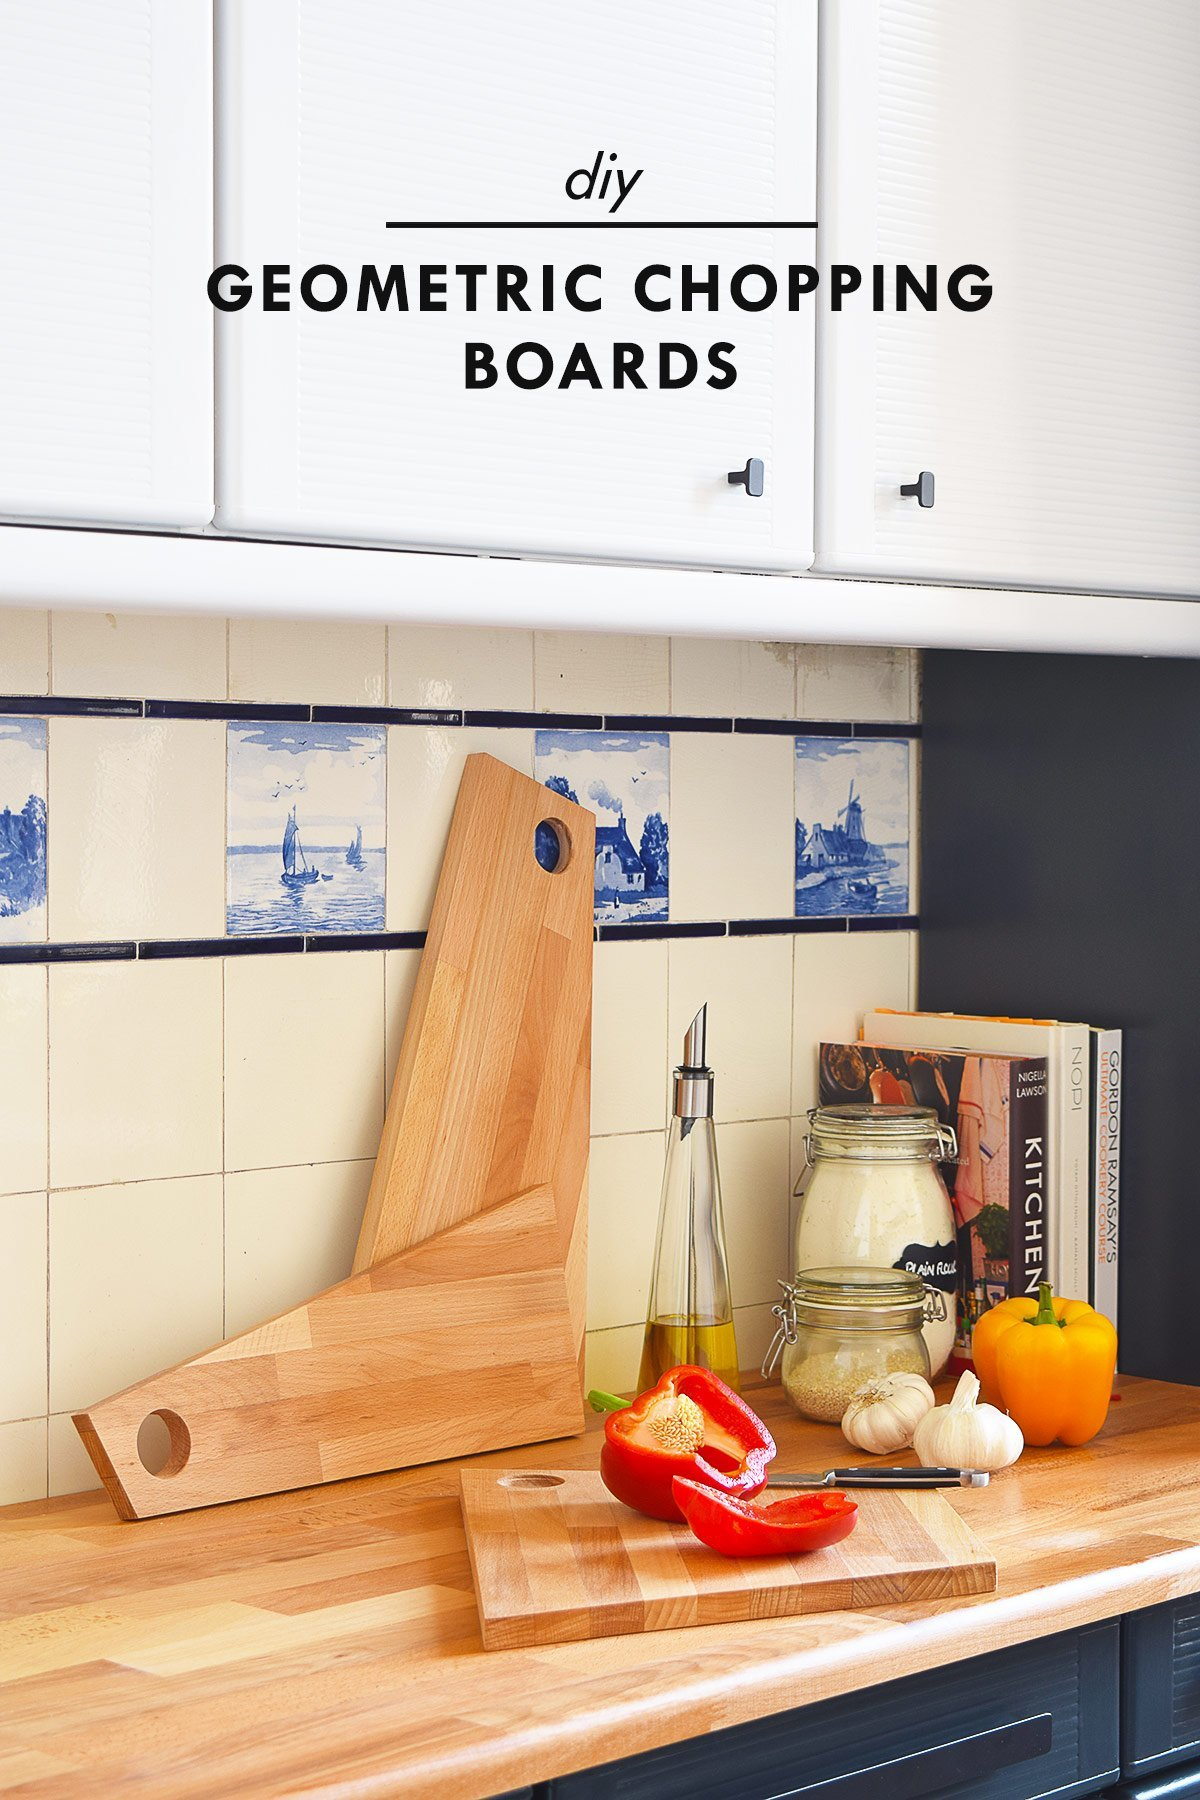 Diy Geometric Chopping Board A Sneaky Peek At Our Kitchen Makeover Little House On The Corner